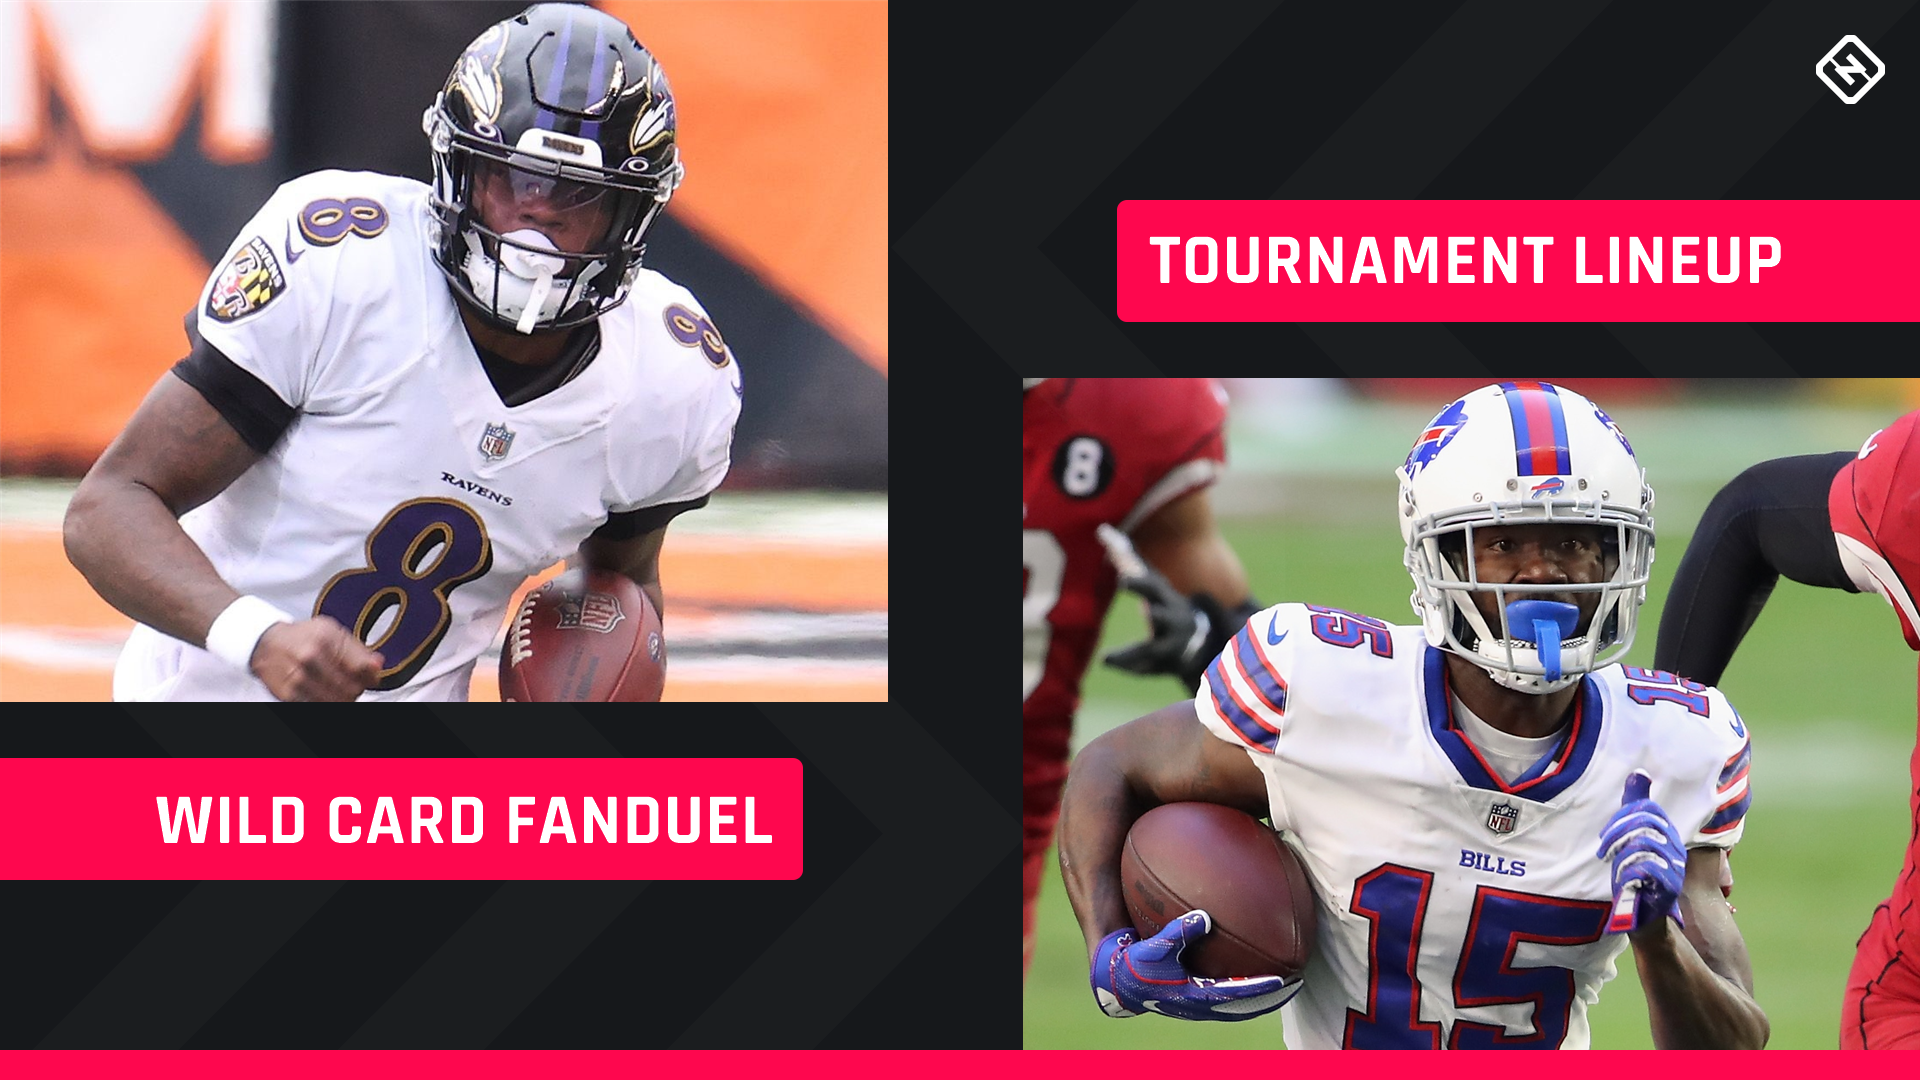 Wild Card FanDuel Picks: NFL DFS lineup advice for daily fantasy football tournaments